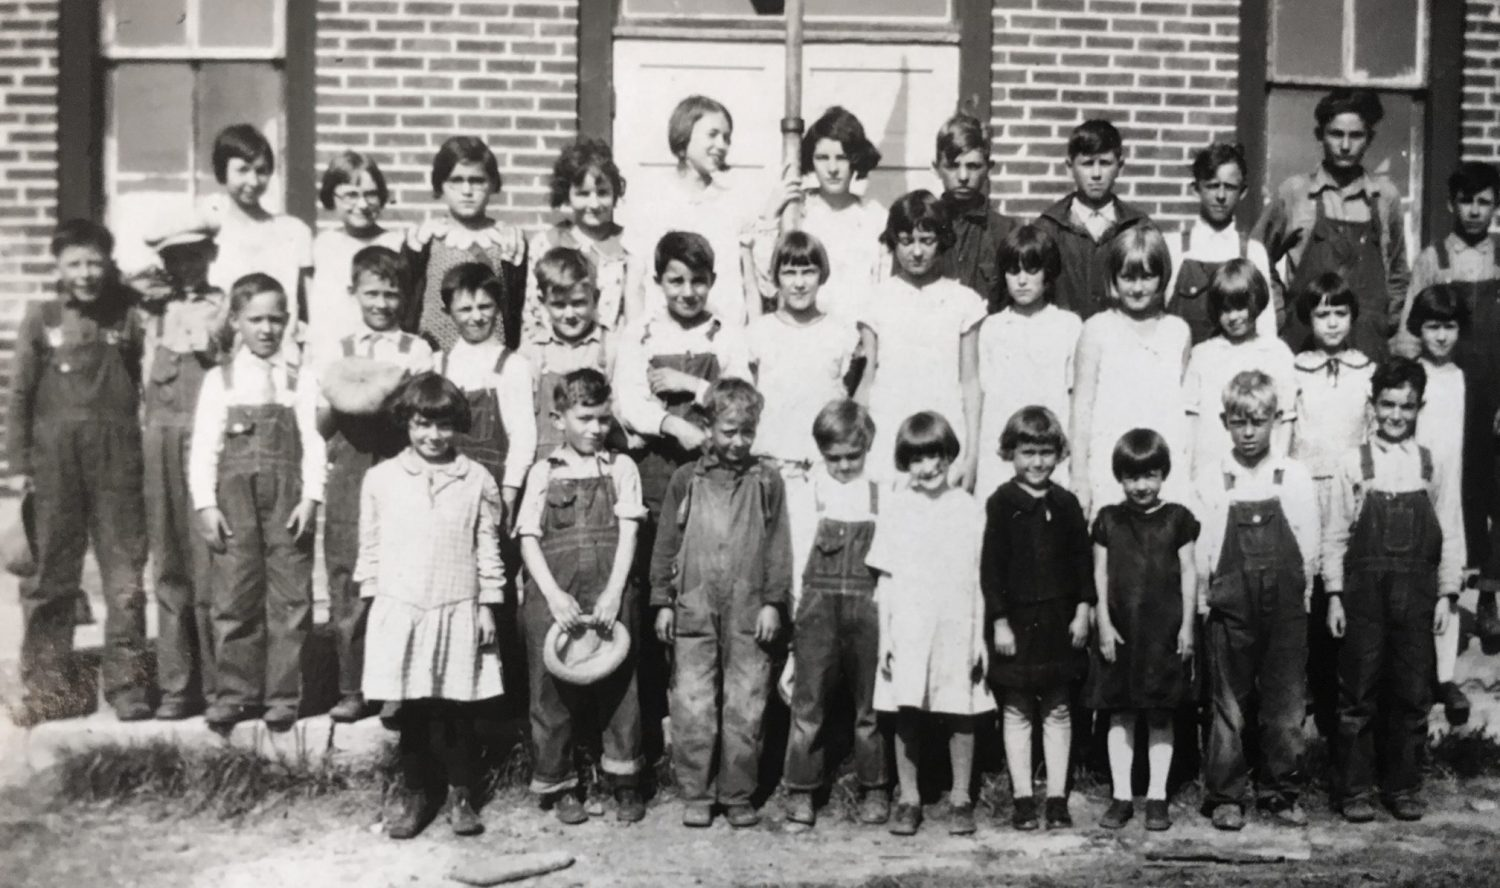 Ivy Sorenson's first teaching position was at Sunshine School in 1928.